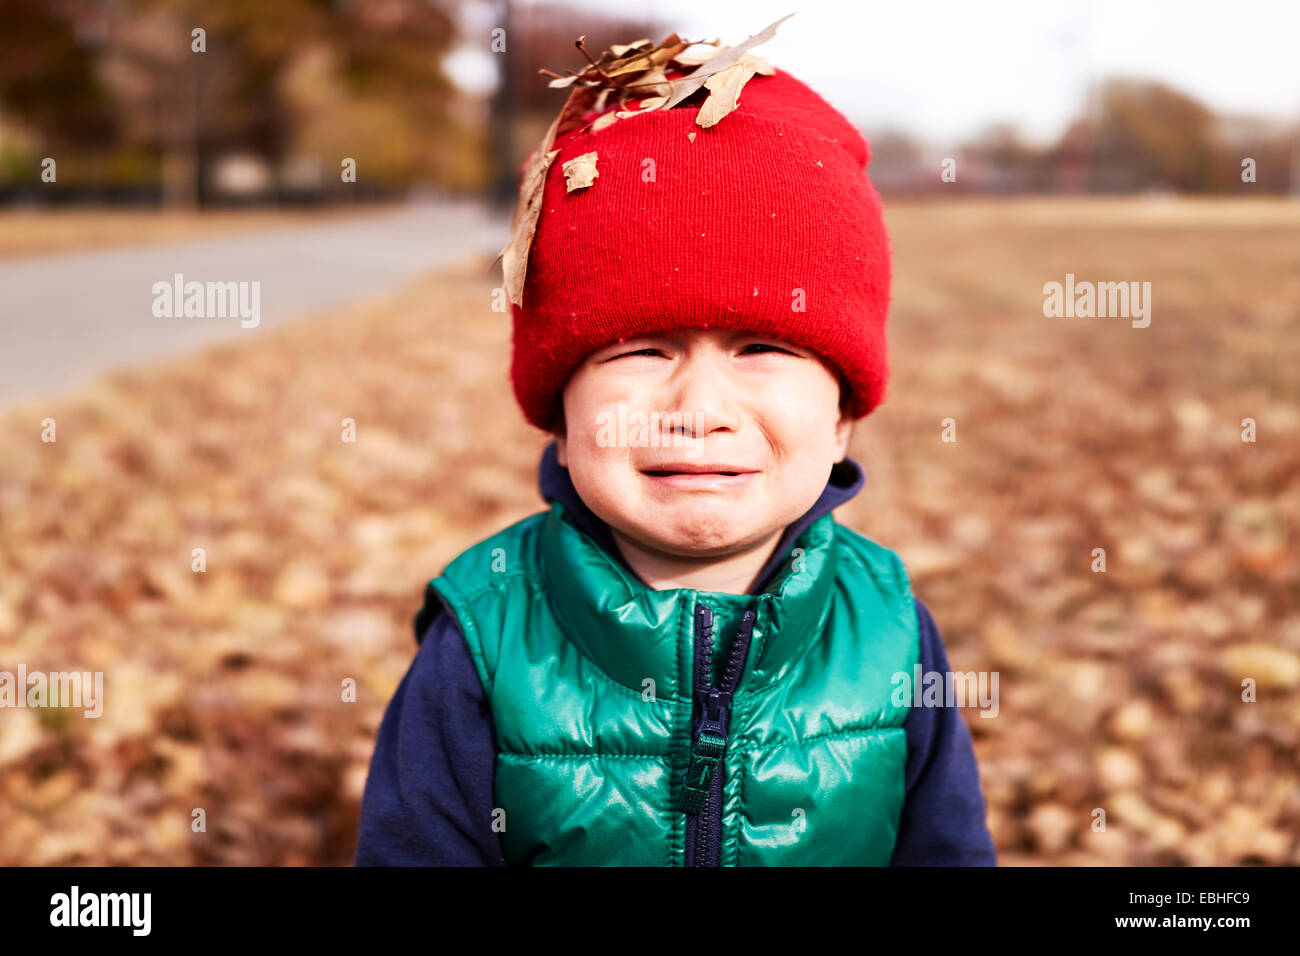 Portrait of male toddler with autumn leaves on red knitted hat - Stock Image